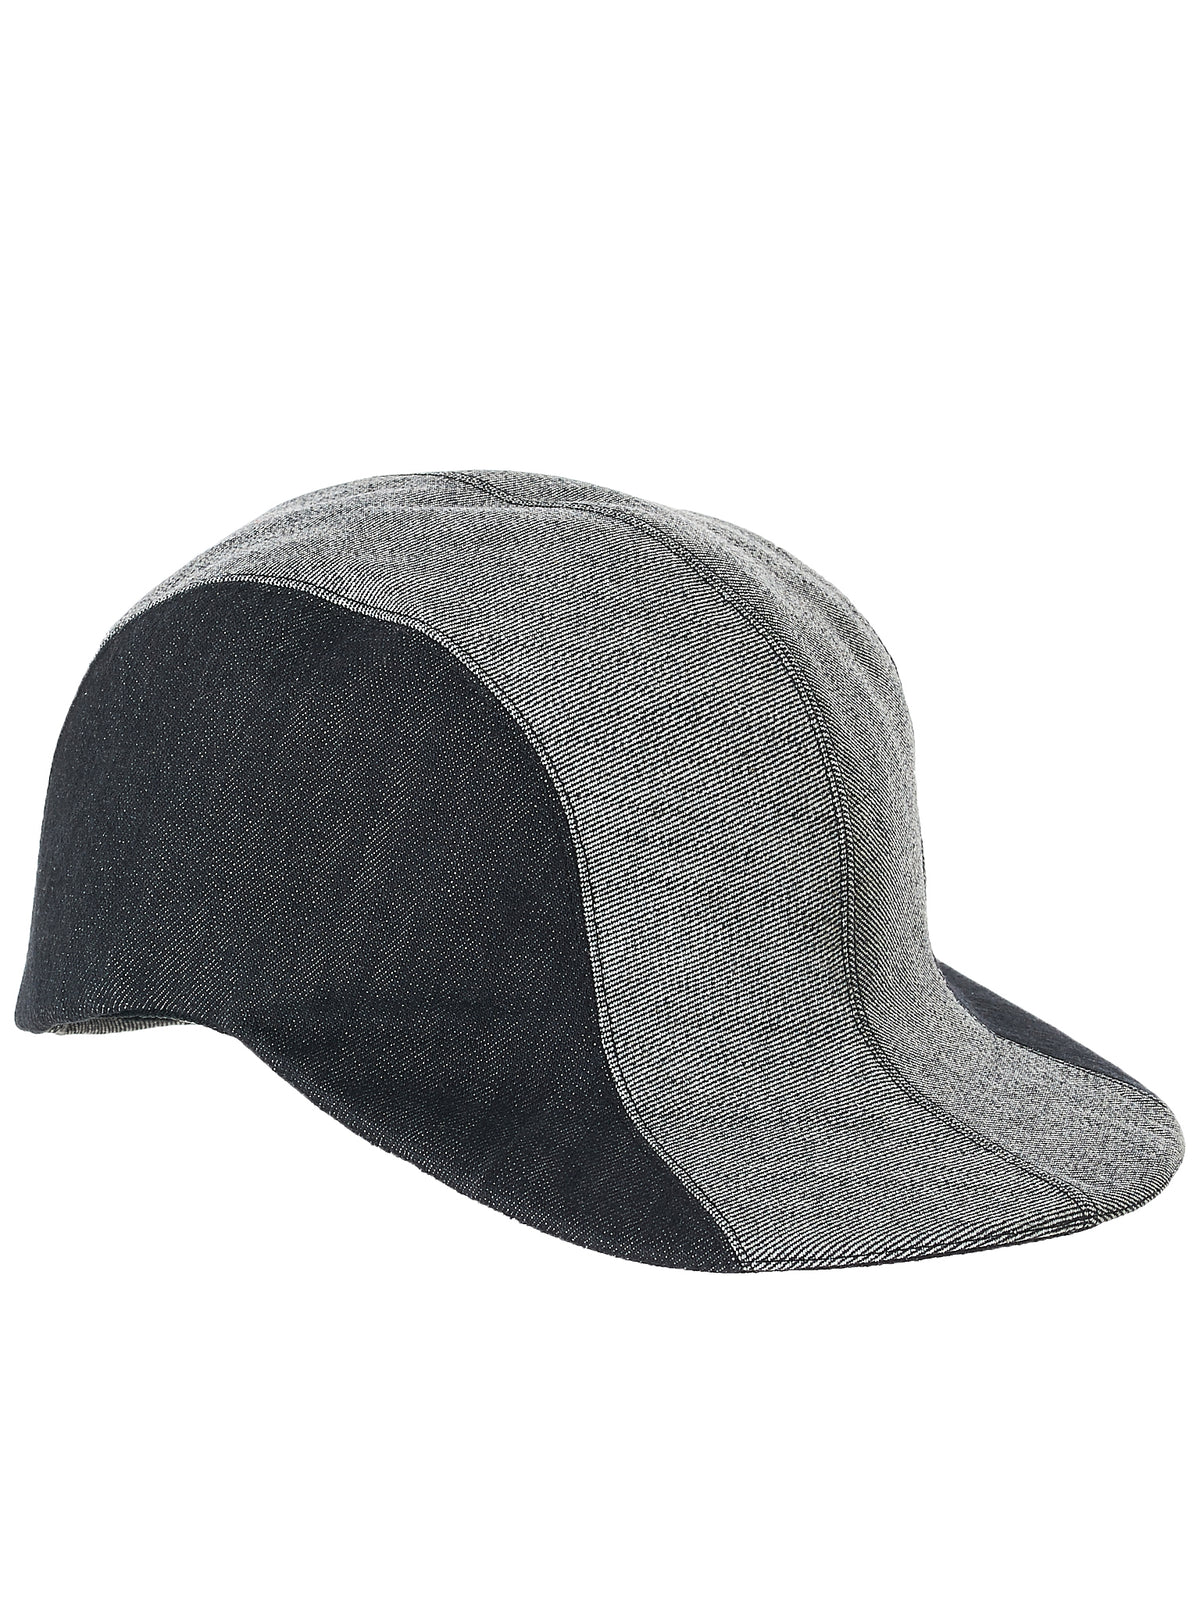 Stephen Jones Denim Cap - Hlorenzo Front